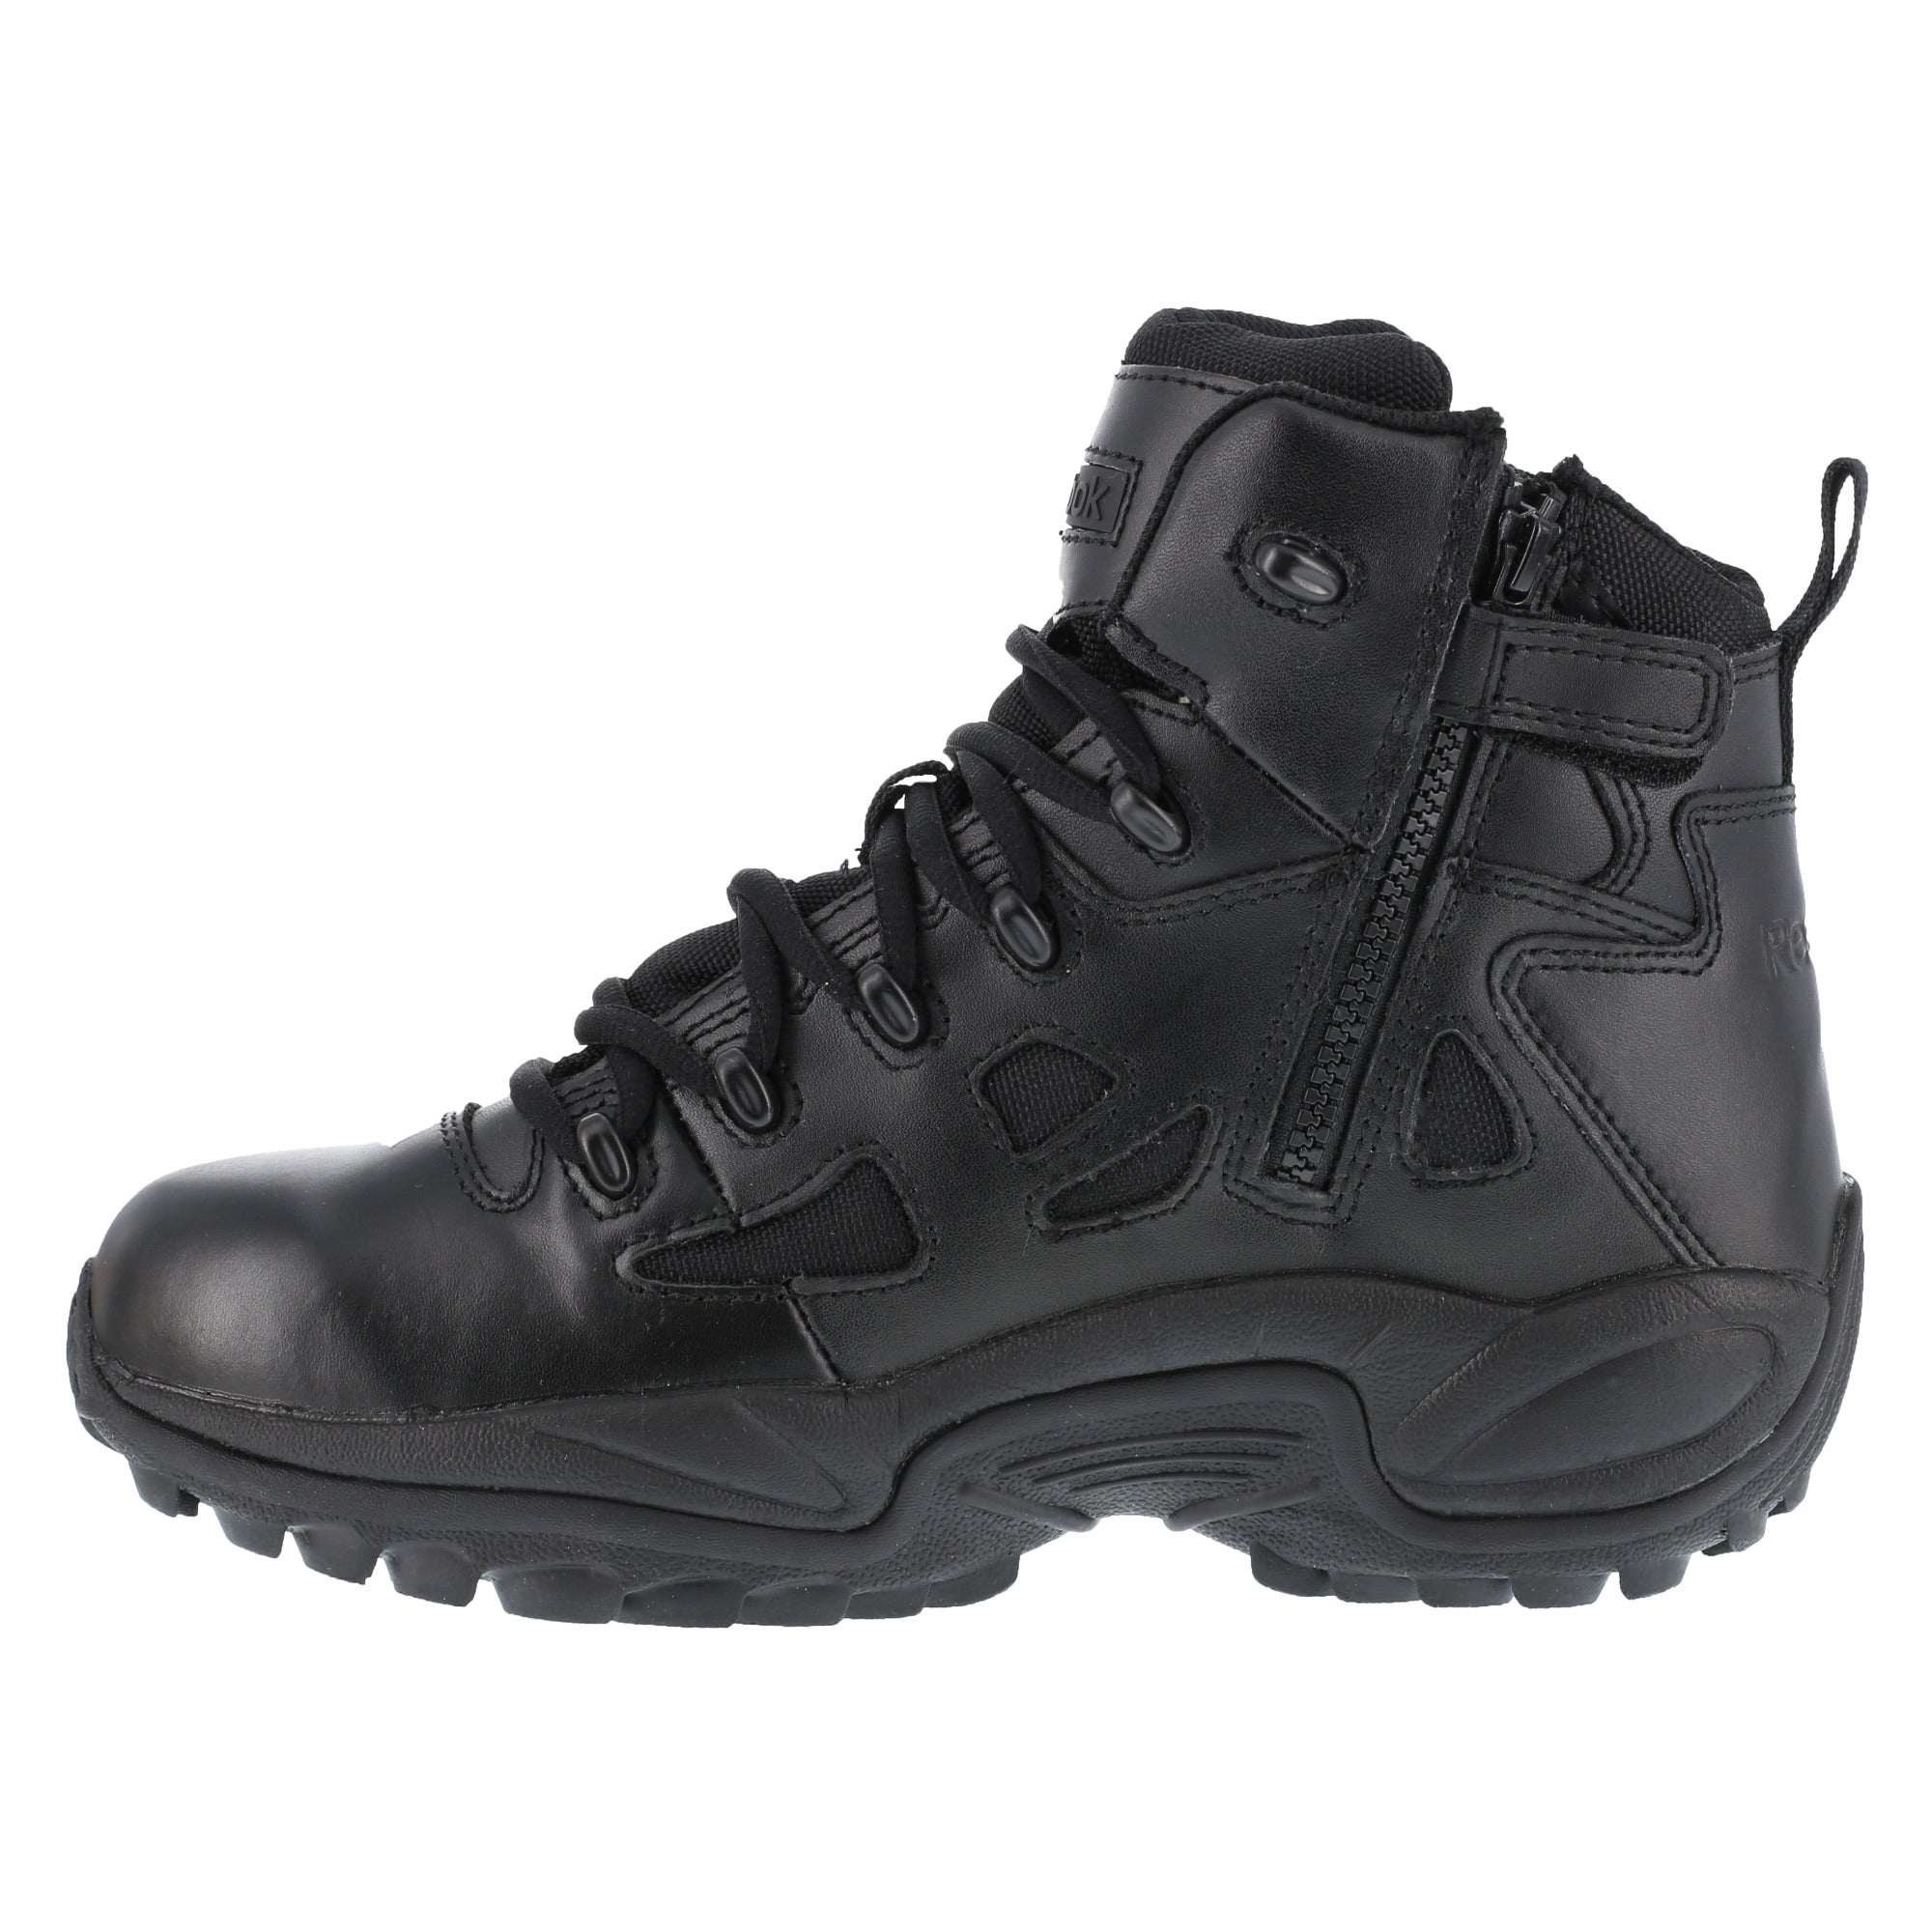 0bc80c07797 Reebok Mens Black Leather 6in Tactical Boots Rapid Response RB Soft ...